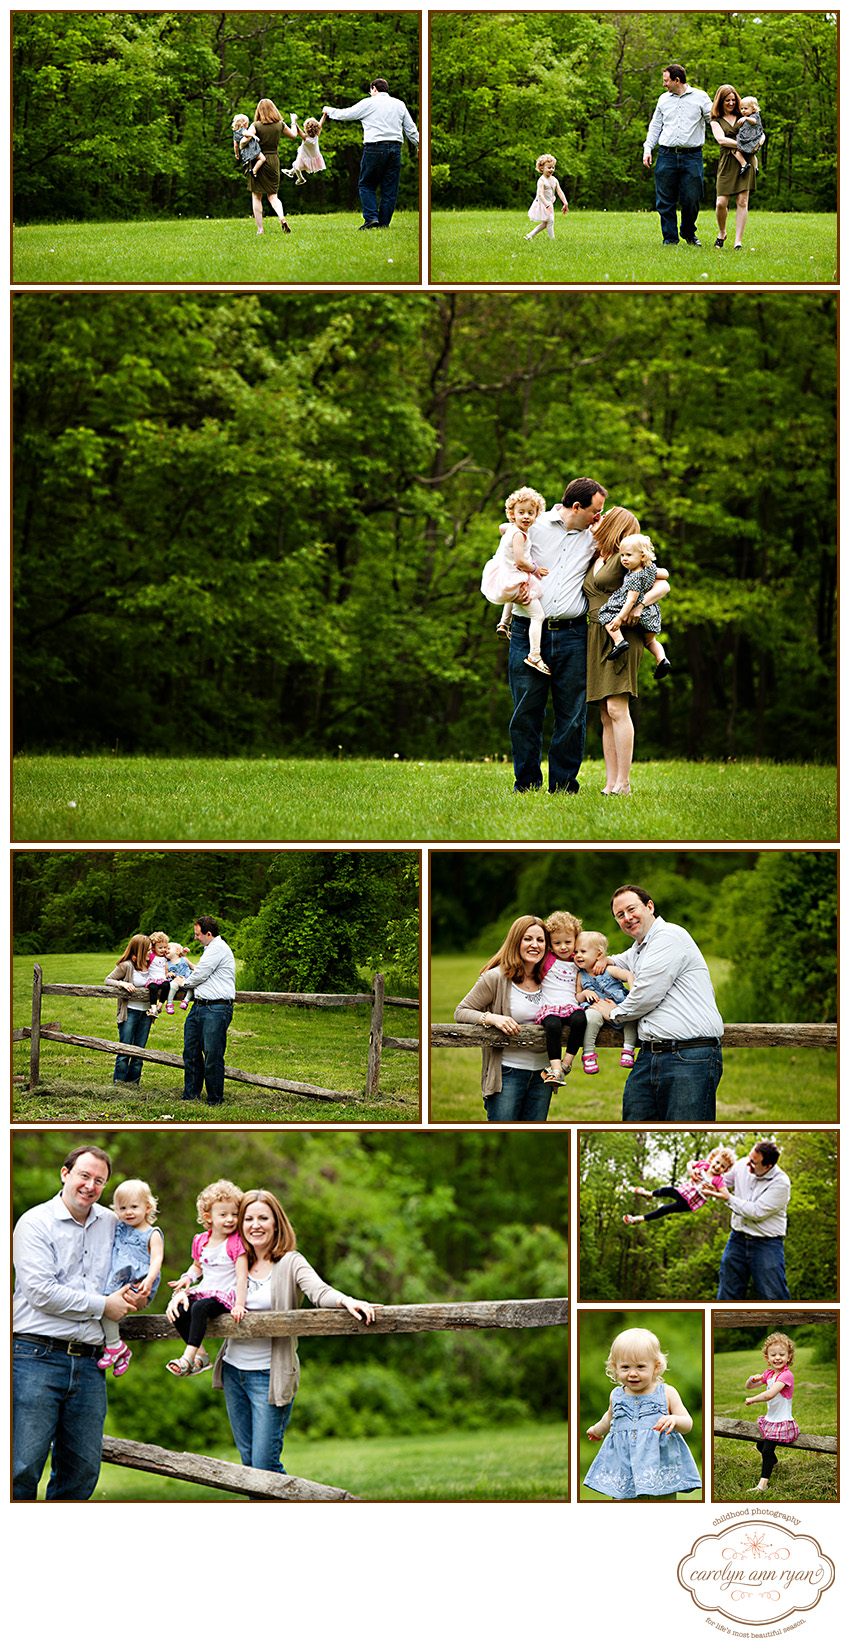 Precious Marvin, NC Child and Family Photography by Carolyn Ann Ryan